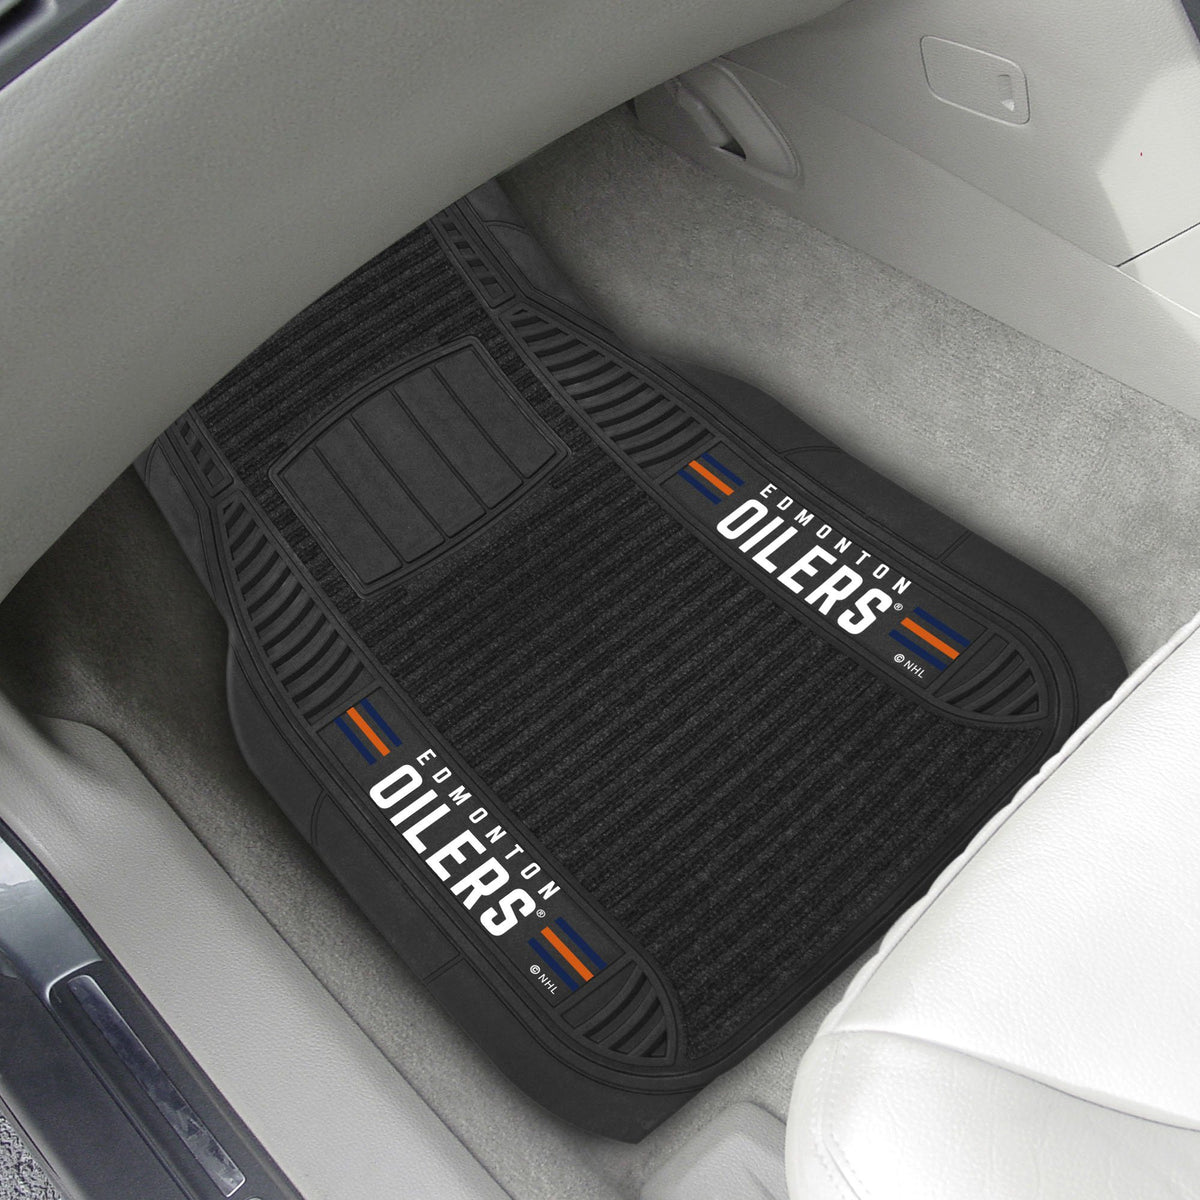 NHL - Deluxe Car Mat, 2-Piece Set NHL Mats, Front Car Mats, 2-pc Deluxe Car Mat Set, NHL, Auto Fan Mats Edmonton Oilers